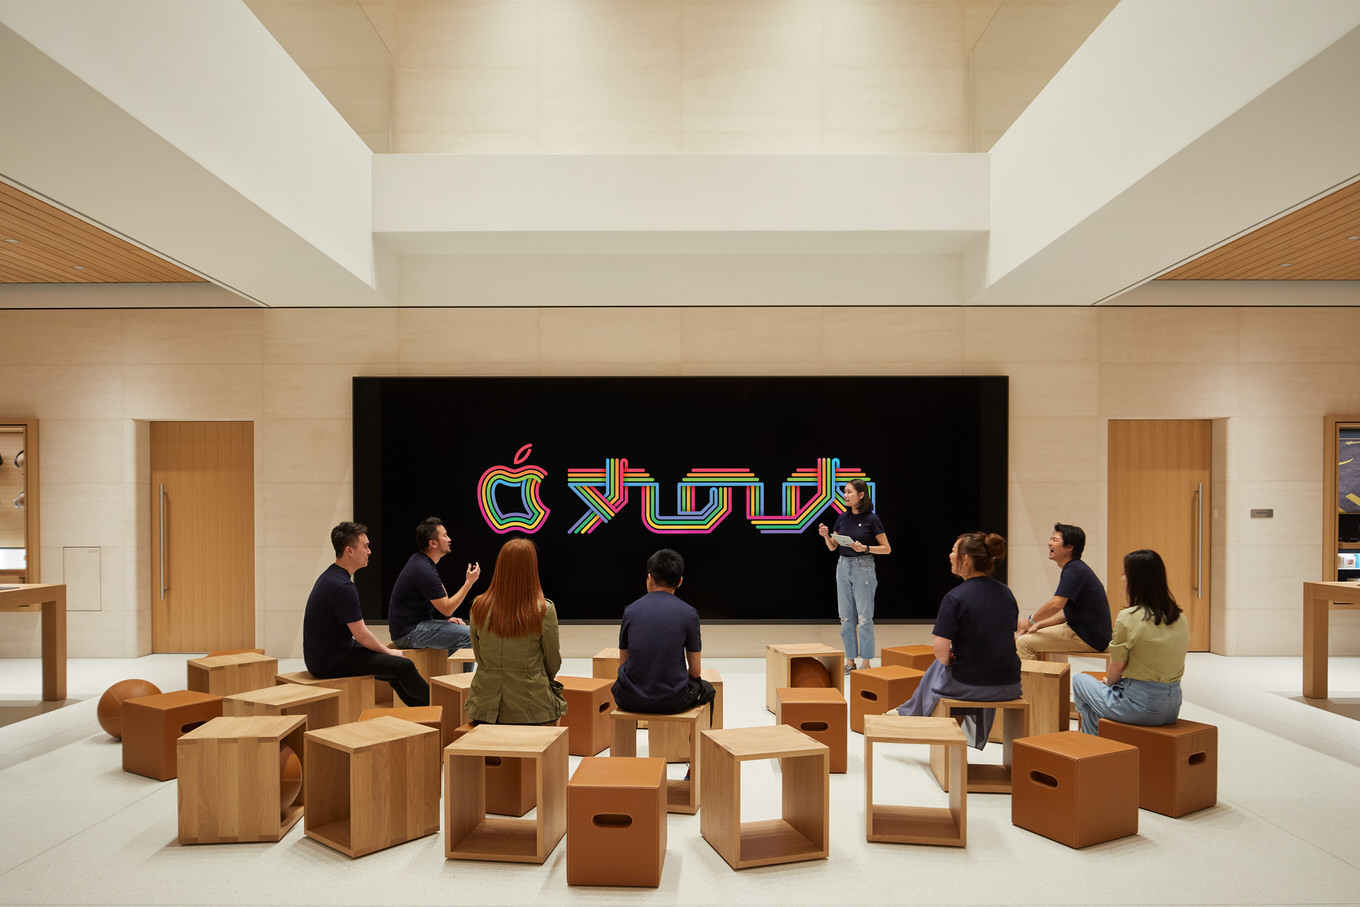 Apple-largest-store-in-Japan-opens-saturday-in-Tokyo-host-creative-guild-090419